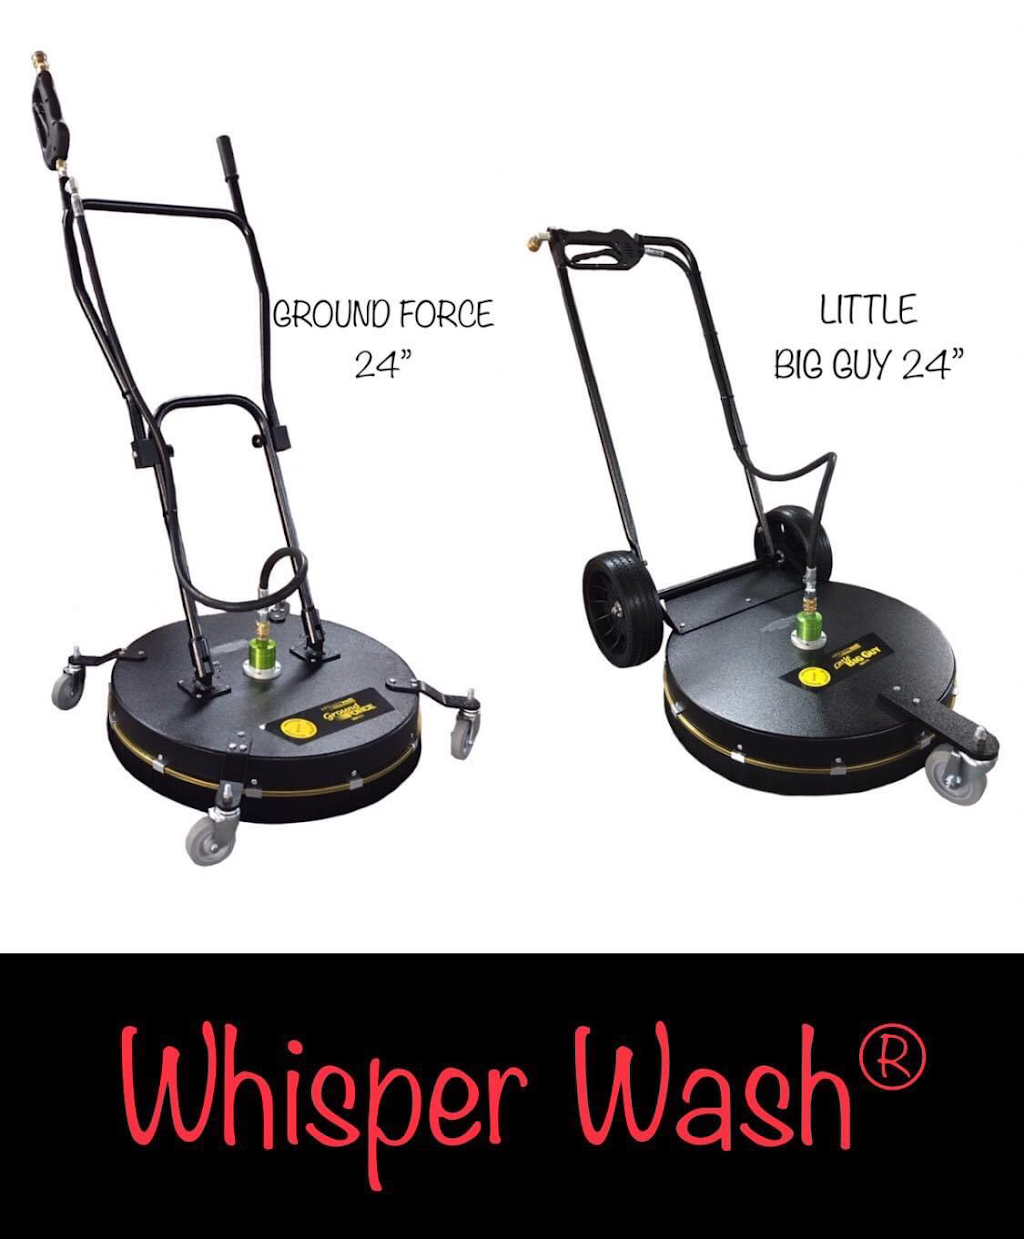 Whisper Wash Inc - storage  | Photo 2 of 9 | Address: 3000 Gandy Blvd, St. Petersburg, FL 33702, USA | Phone: (727) 577-1292